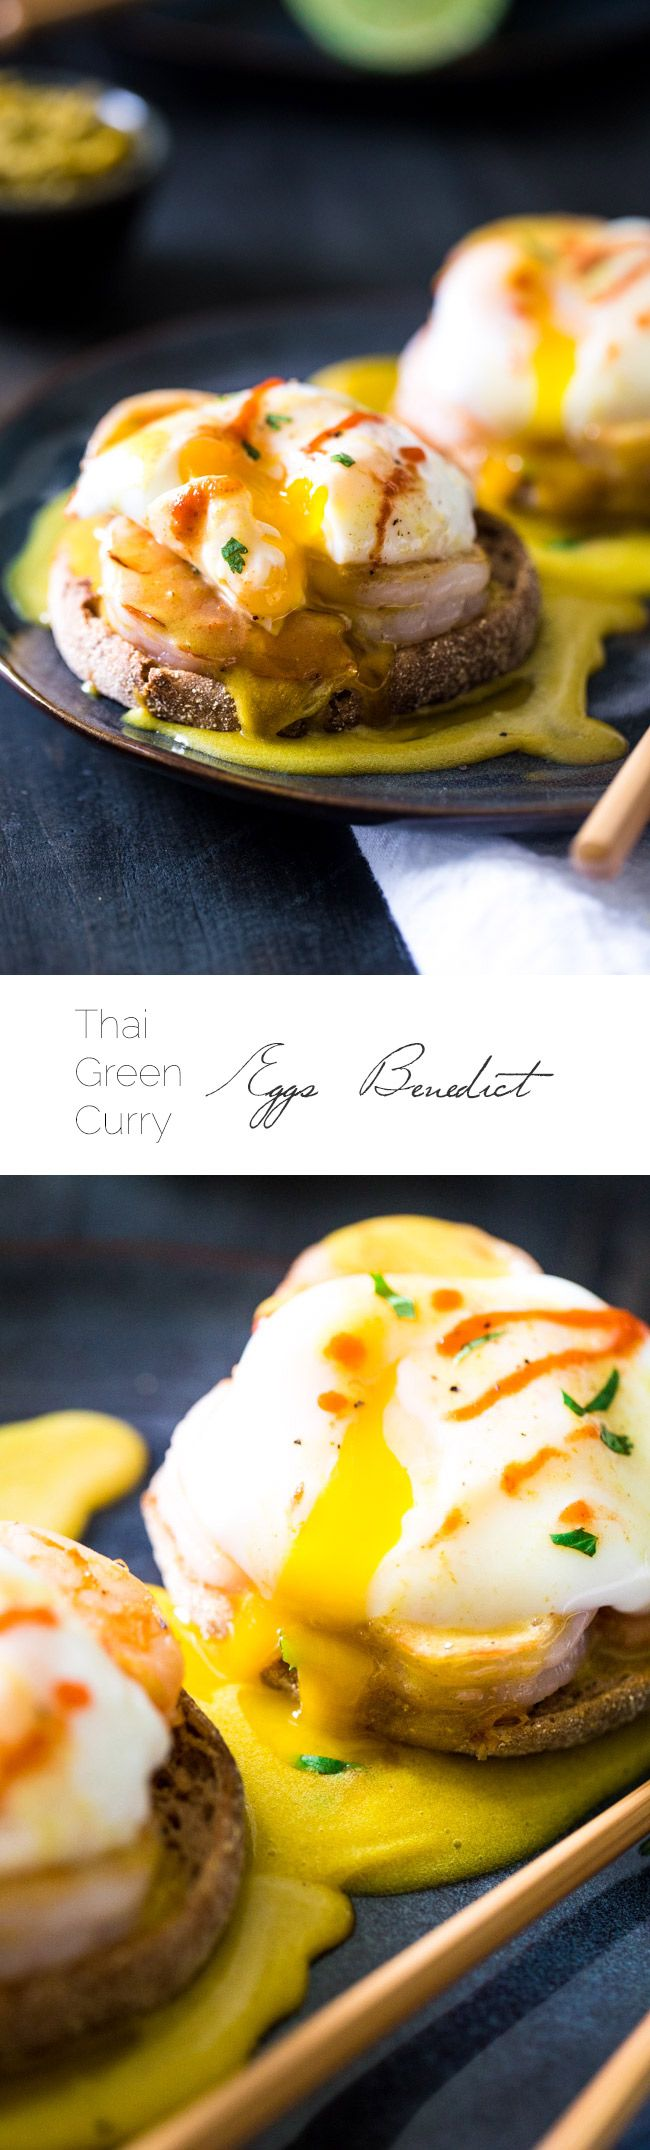 Thai Green Curry Eggs Benedict - A quick and easy, Thai twist on the classic Eggs Benedict Recipe that uses Green Curry paste and coconut oil to make a healthy Hollandaise sauce!